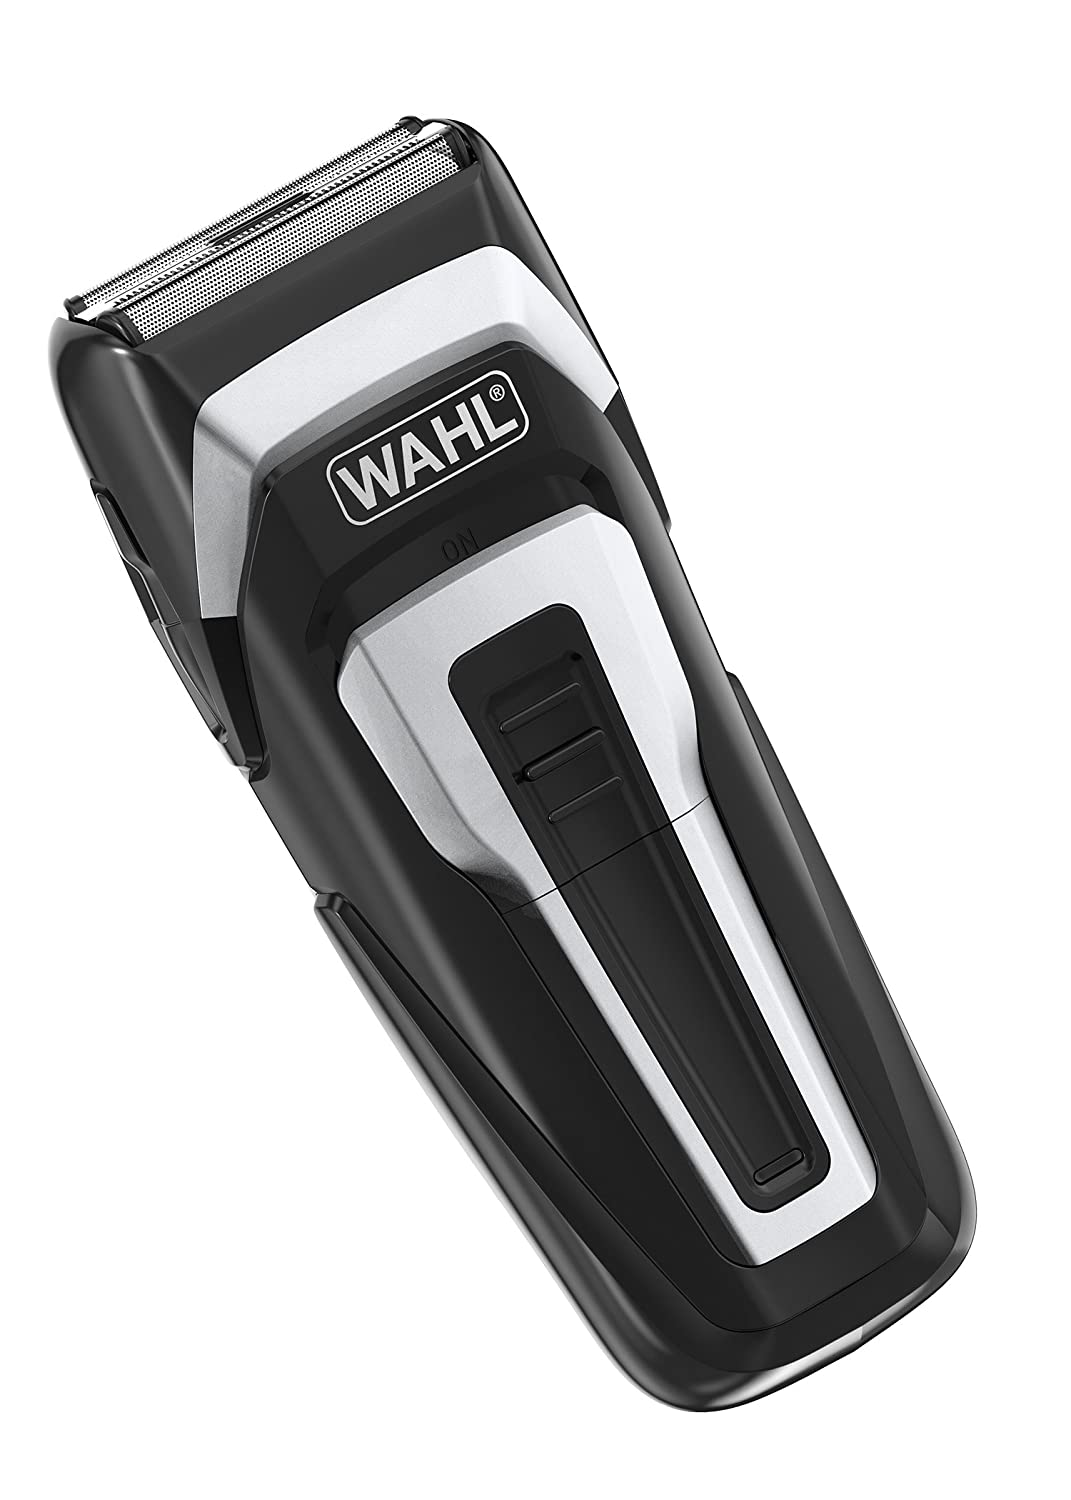 Wahl Ultima Plus Rechargeable Shaver 5037127019672